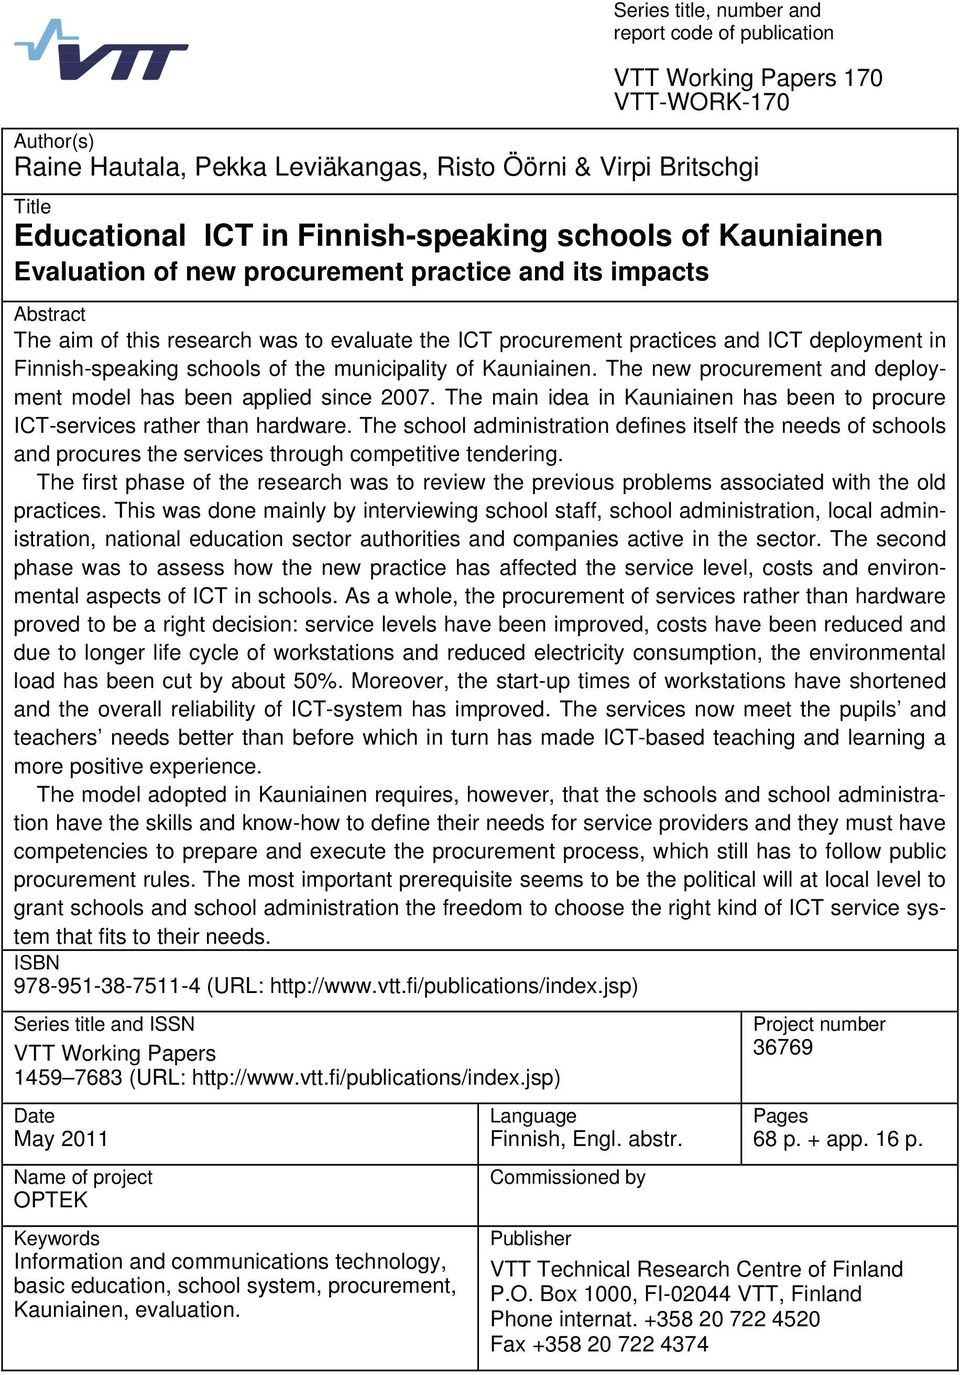 Finnish-speaking schools of the municipality of Kauniainen. The new procurement and deployment model has been applied since 2007.